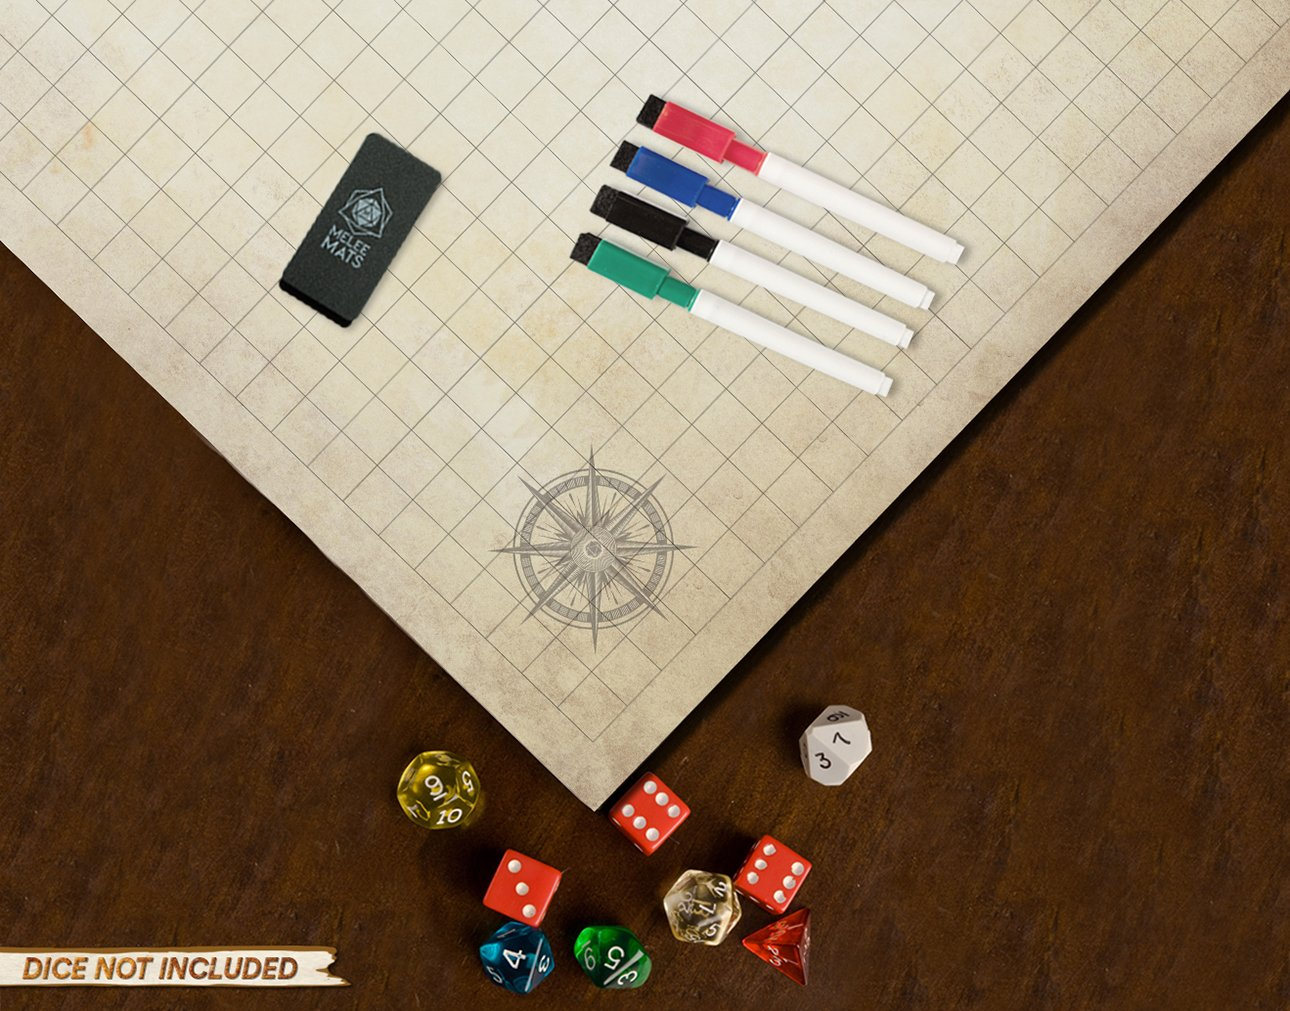 Battle Grid Game Mat - ULTRA DURABLE POLYMER MATERIAL - JUMBO Role Playing DnD Map - Reusable Table Top Non Hex Mats - RPG Dungeons and Dragons Dry Erase Tiles - Large Set for Starters and Masters by Evolve Skins (Image #6)